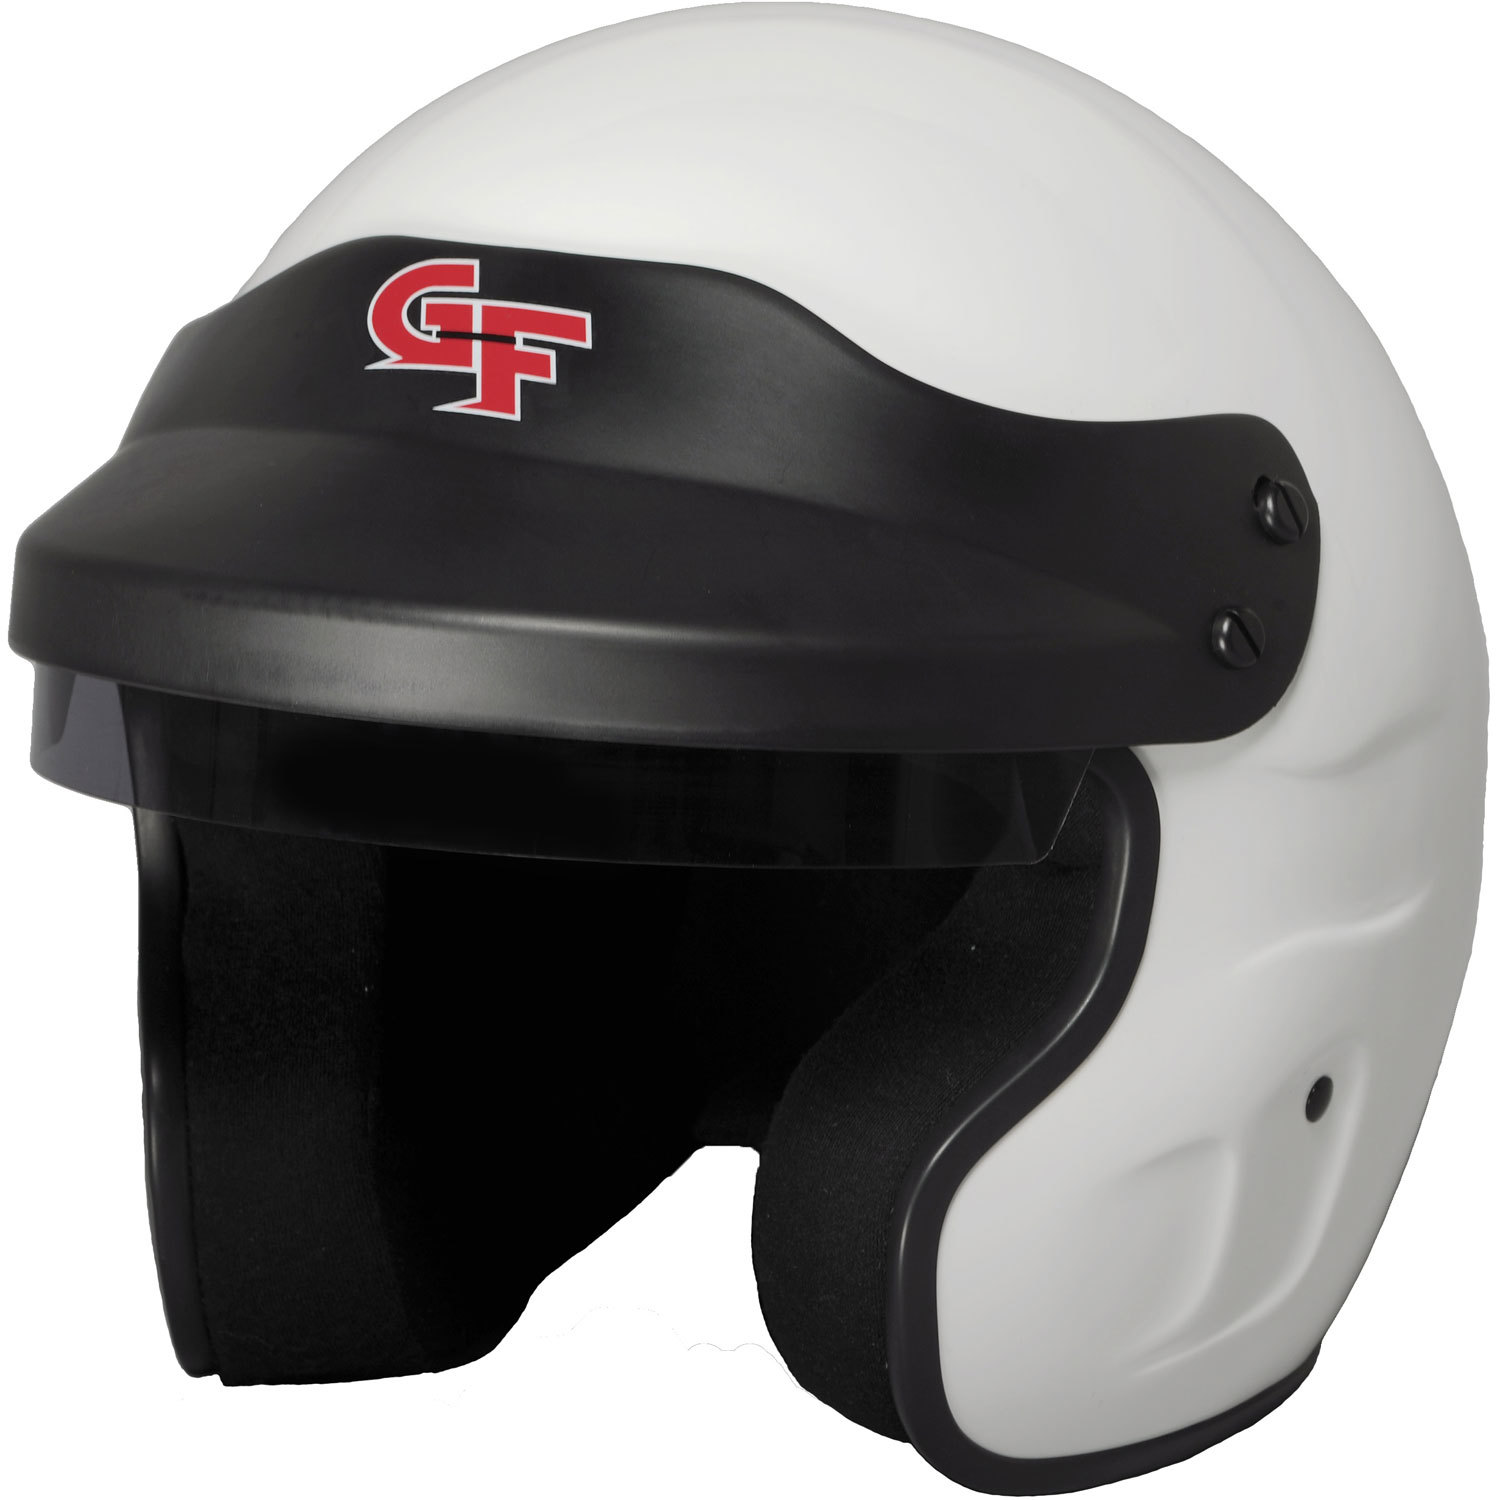 G-Force 3121MEDWH Helmet, GF1, Open Face, Snell SA2015, Head and Neck Support Ready, White, Medium, Each